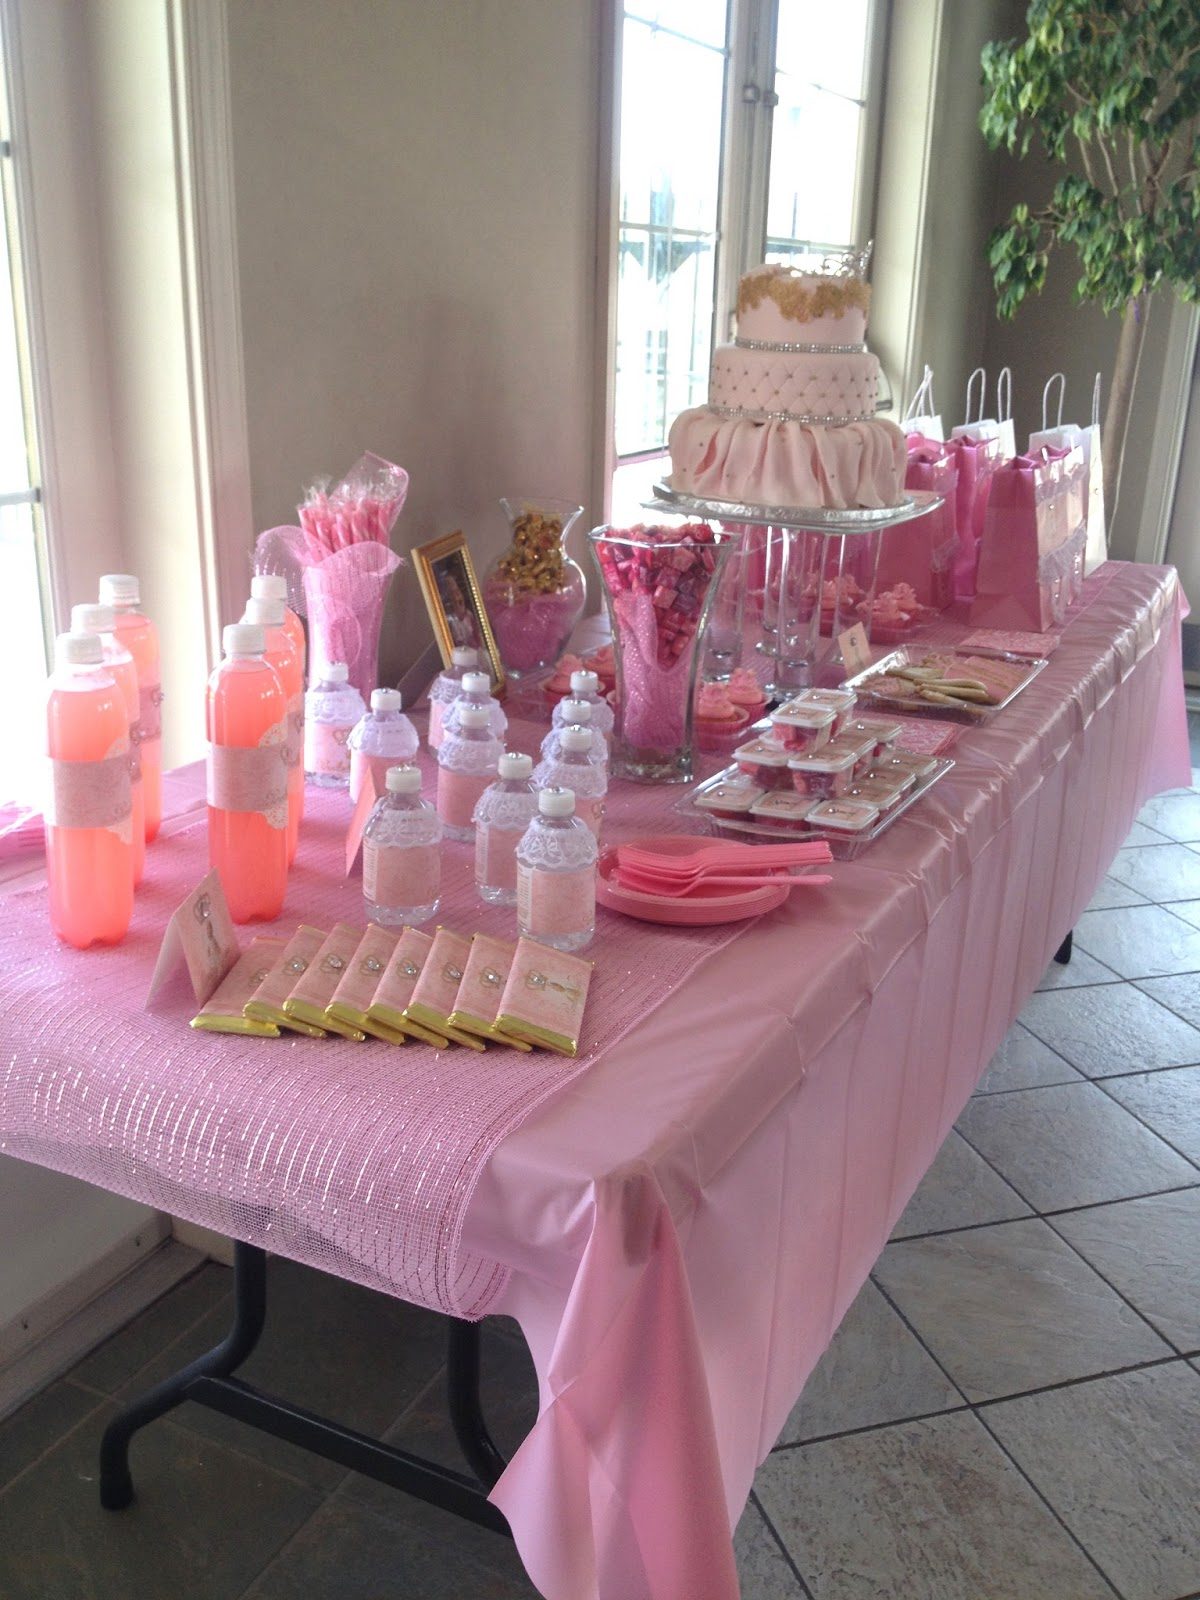 plastic chair covers party city lounge chairs at walmart exquisite couture designs all things creative by crystal